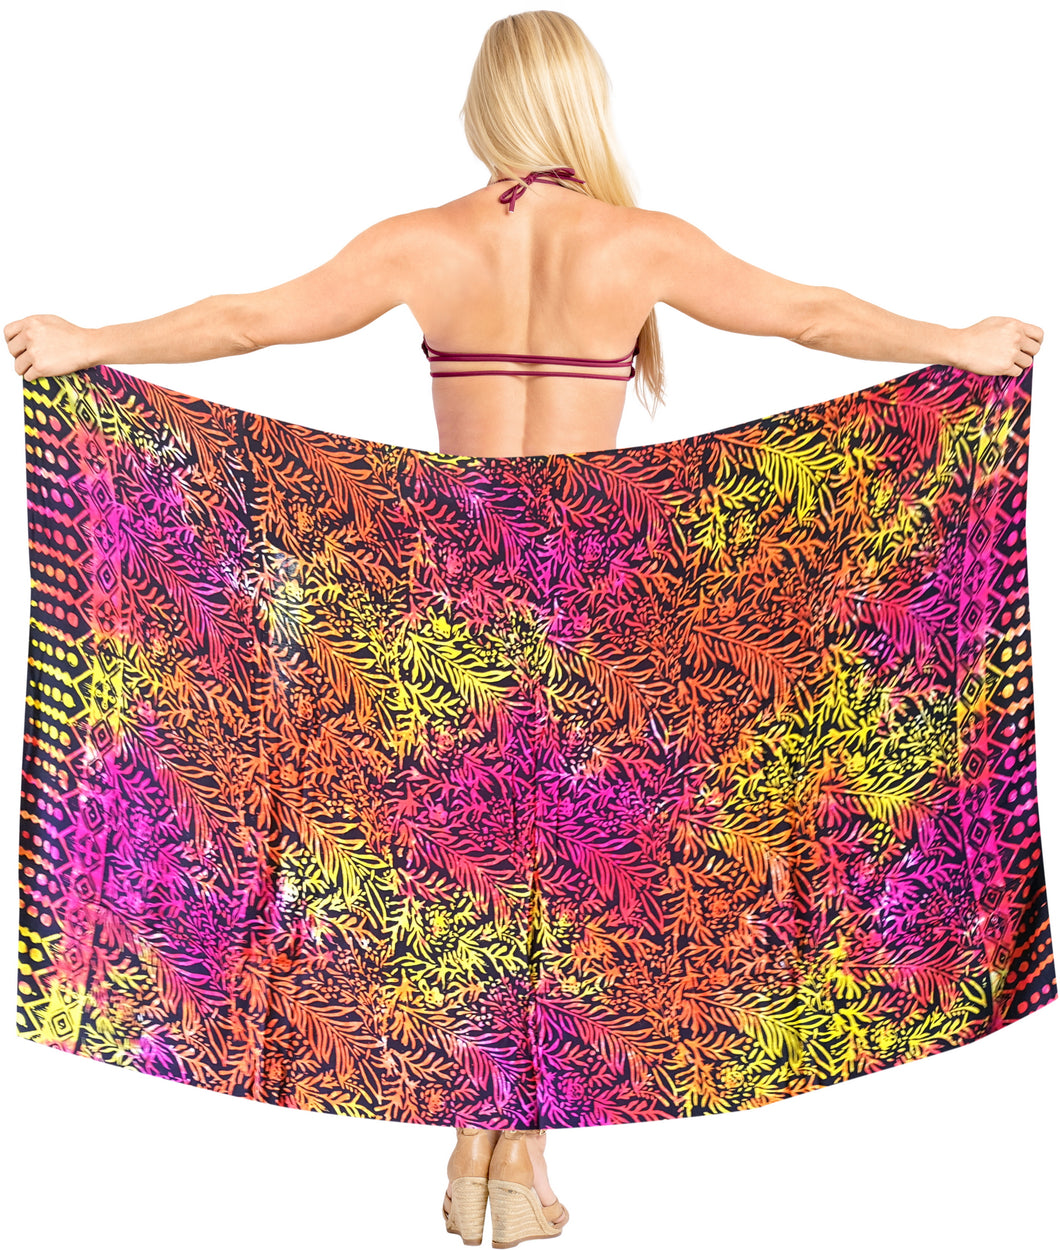 la-leela-bathing-towel-beach-wear-swimsuit-womens-Wrap Skirt-sarong-bikini-cover-up-Leaf-Printed-multicolor